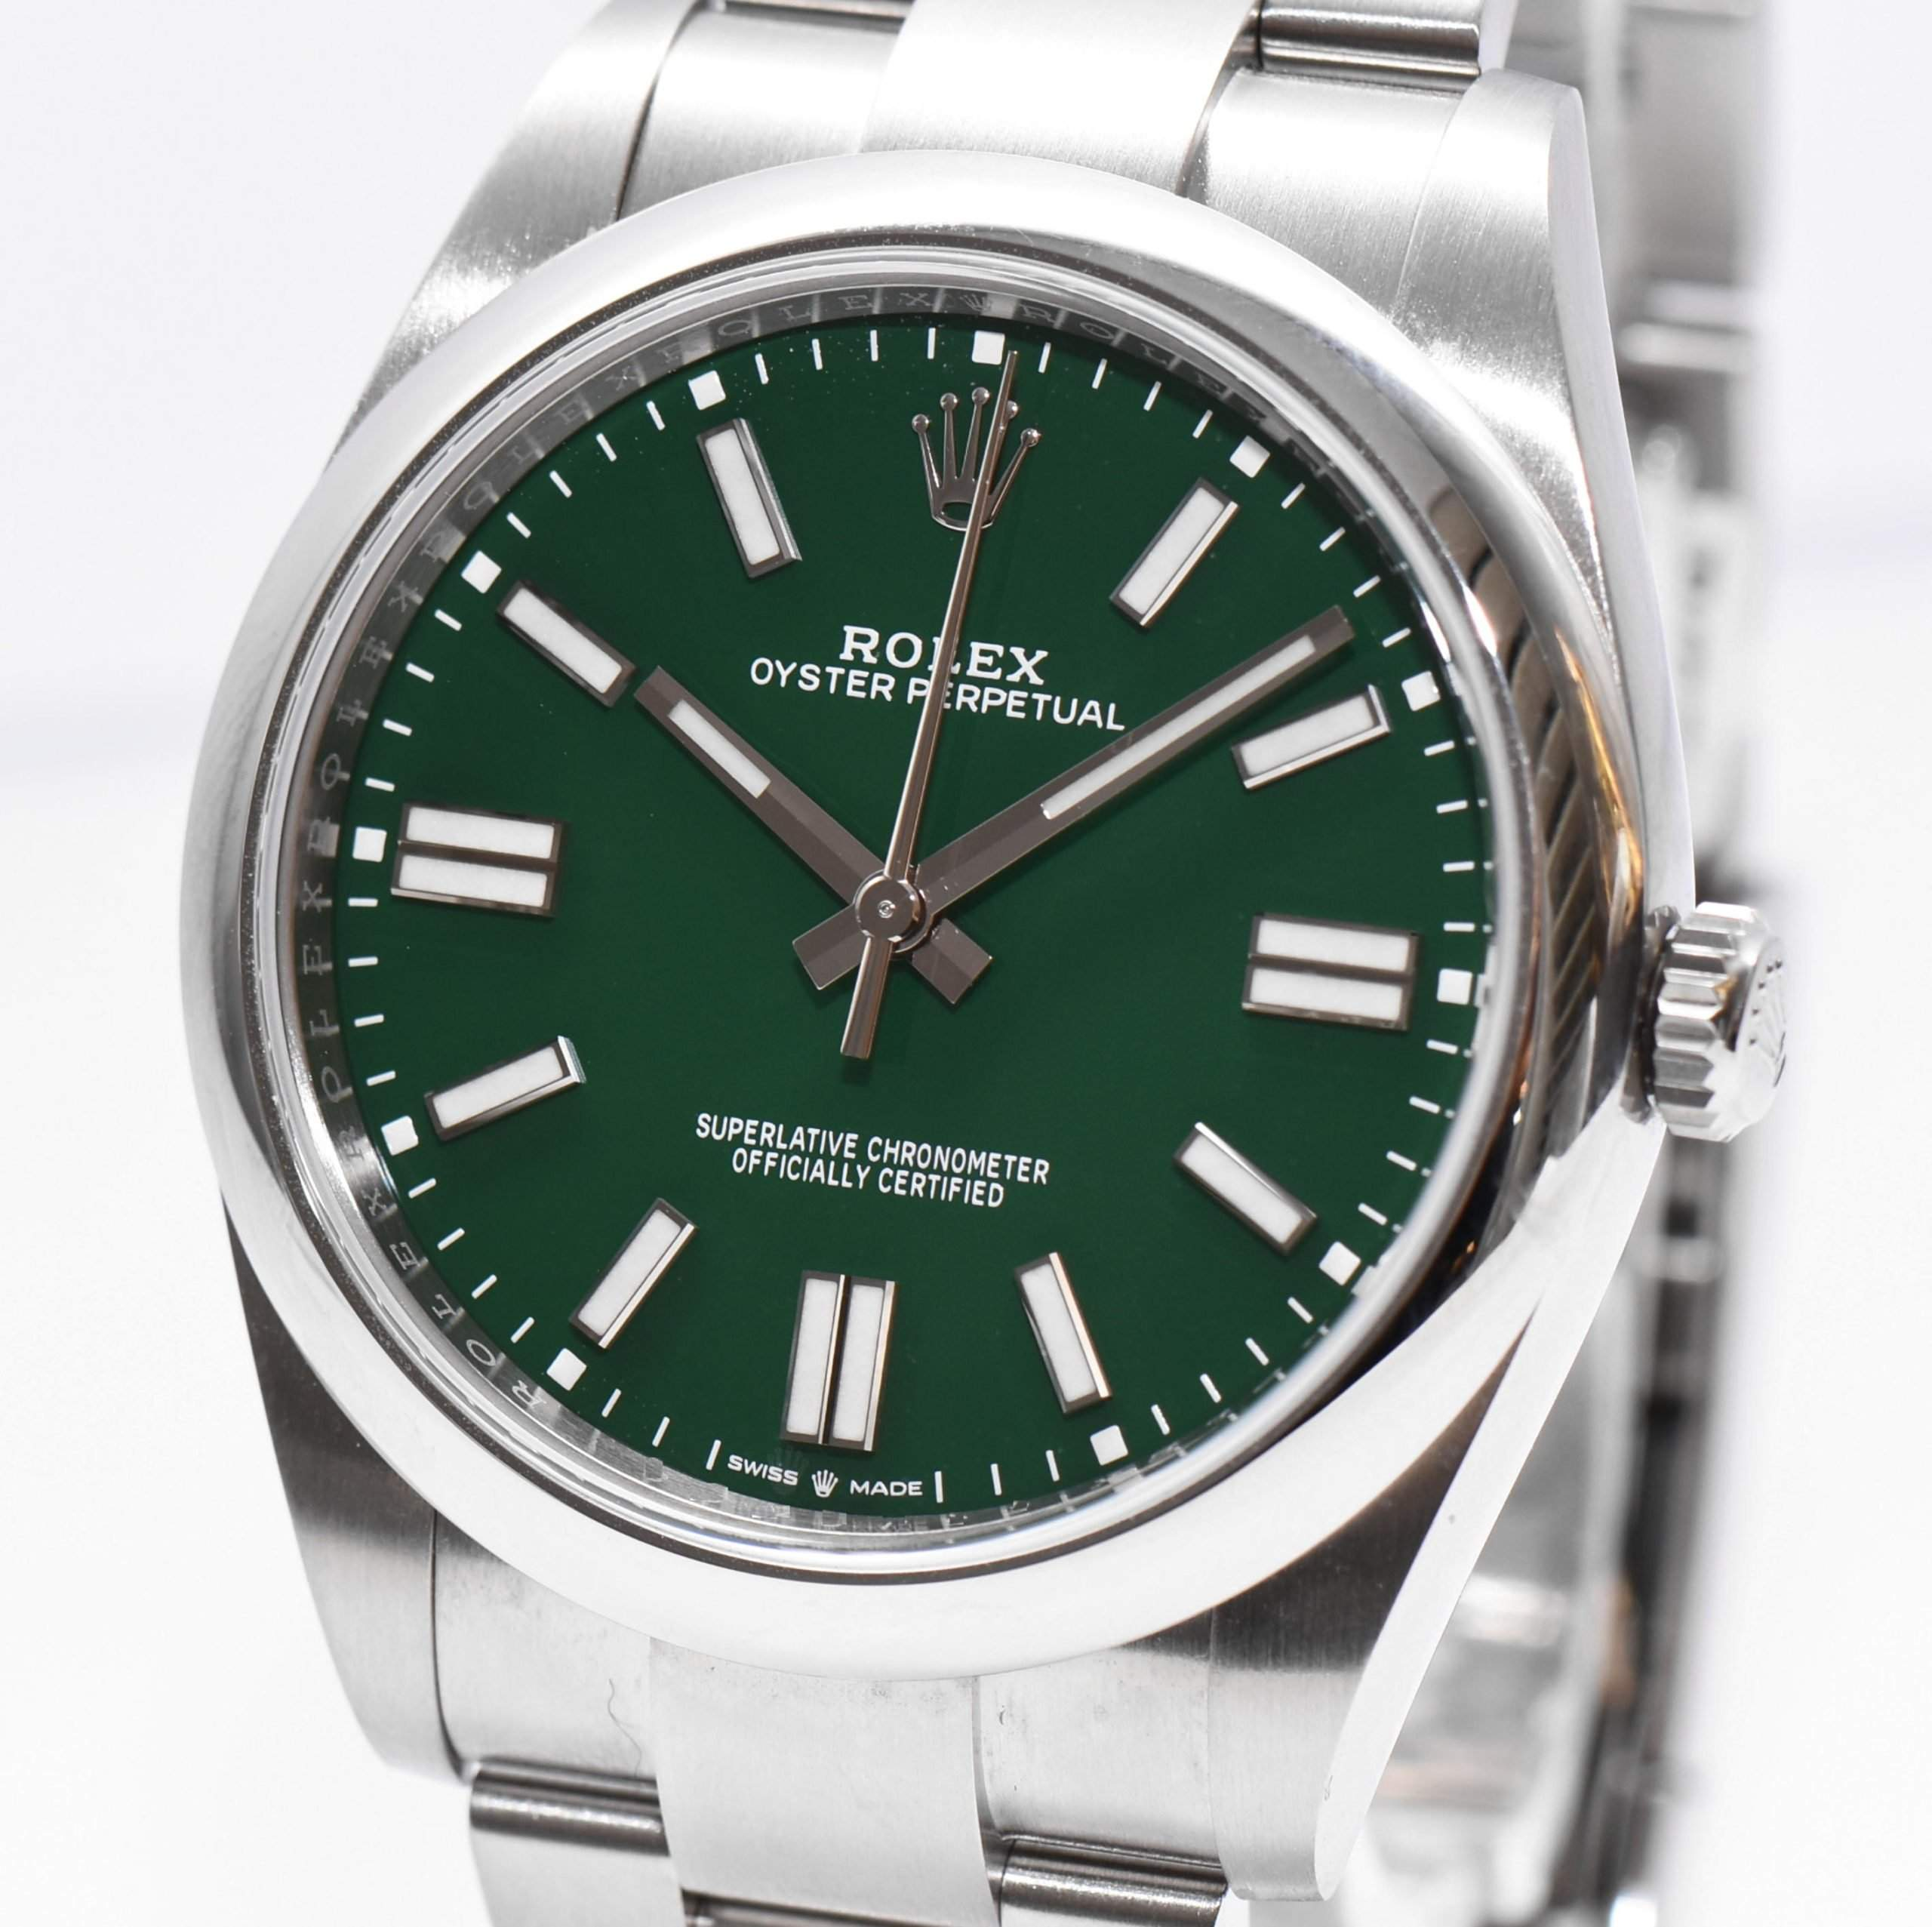 Top seller: The Rolex Oyster Perpetual ref. 124300